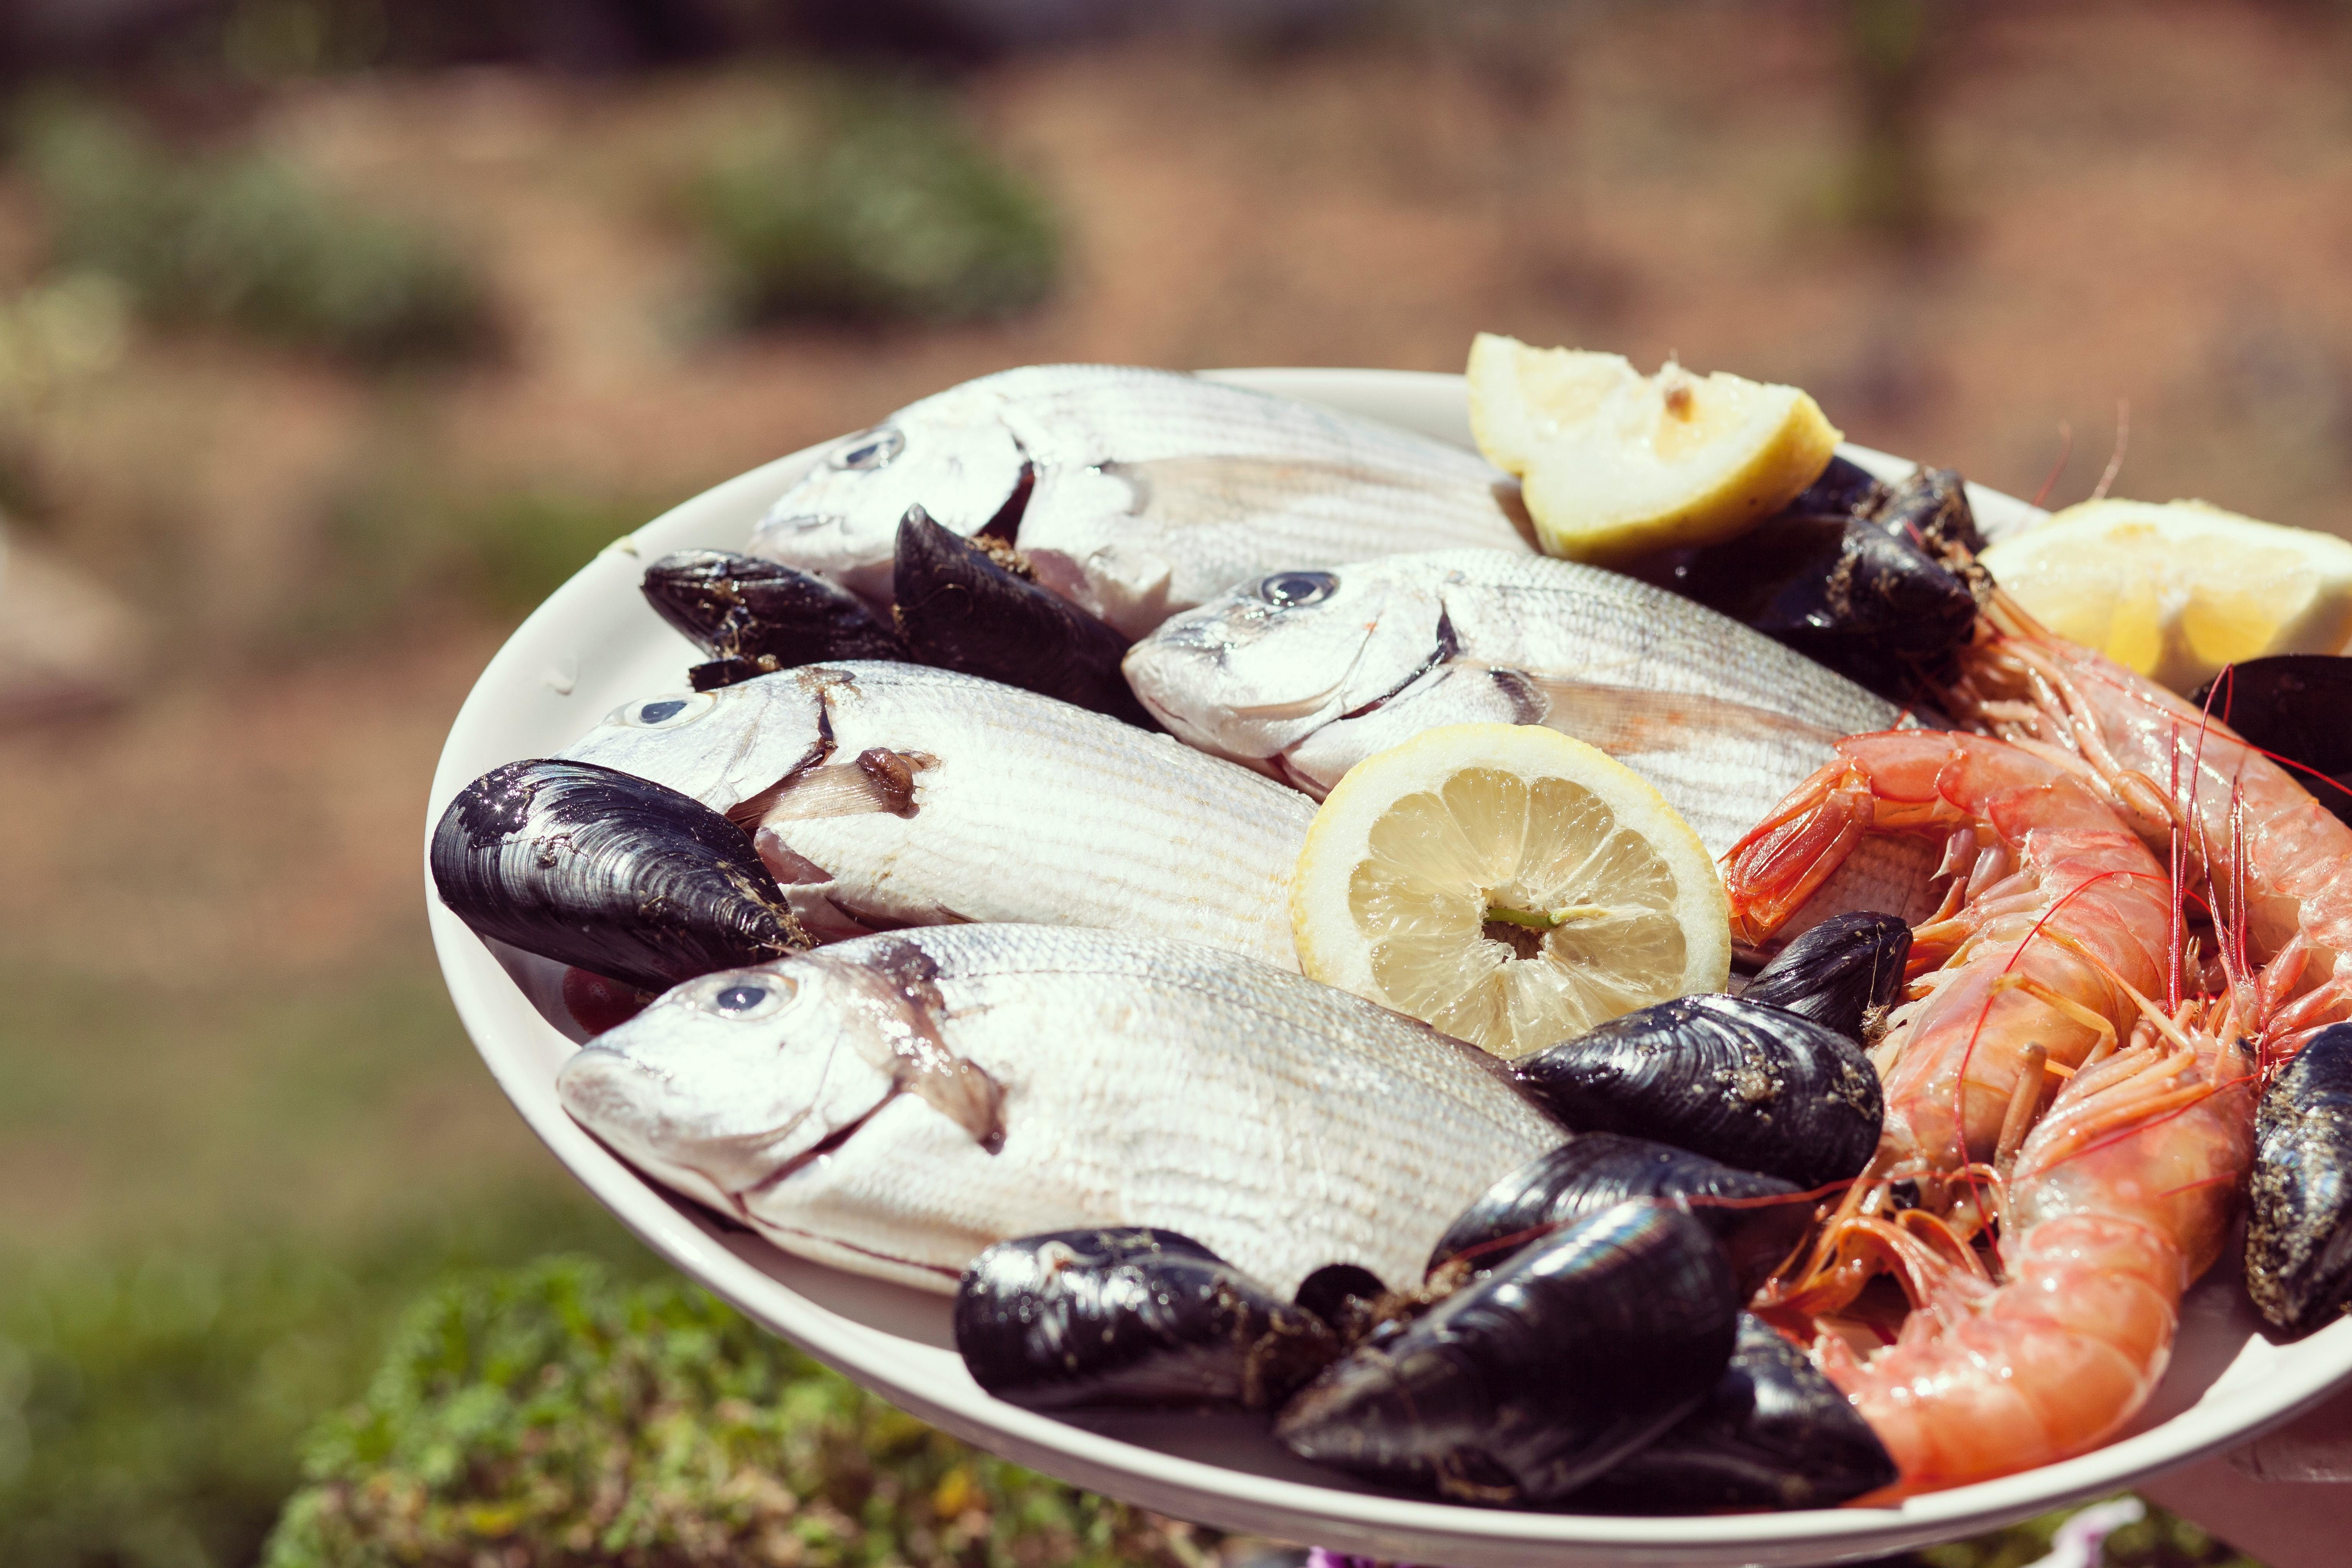 A plate of seafood - including fish, shrimp and mussels.